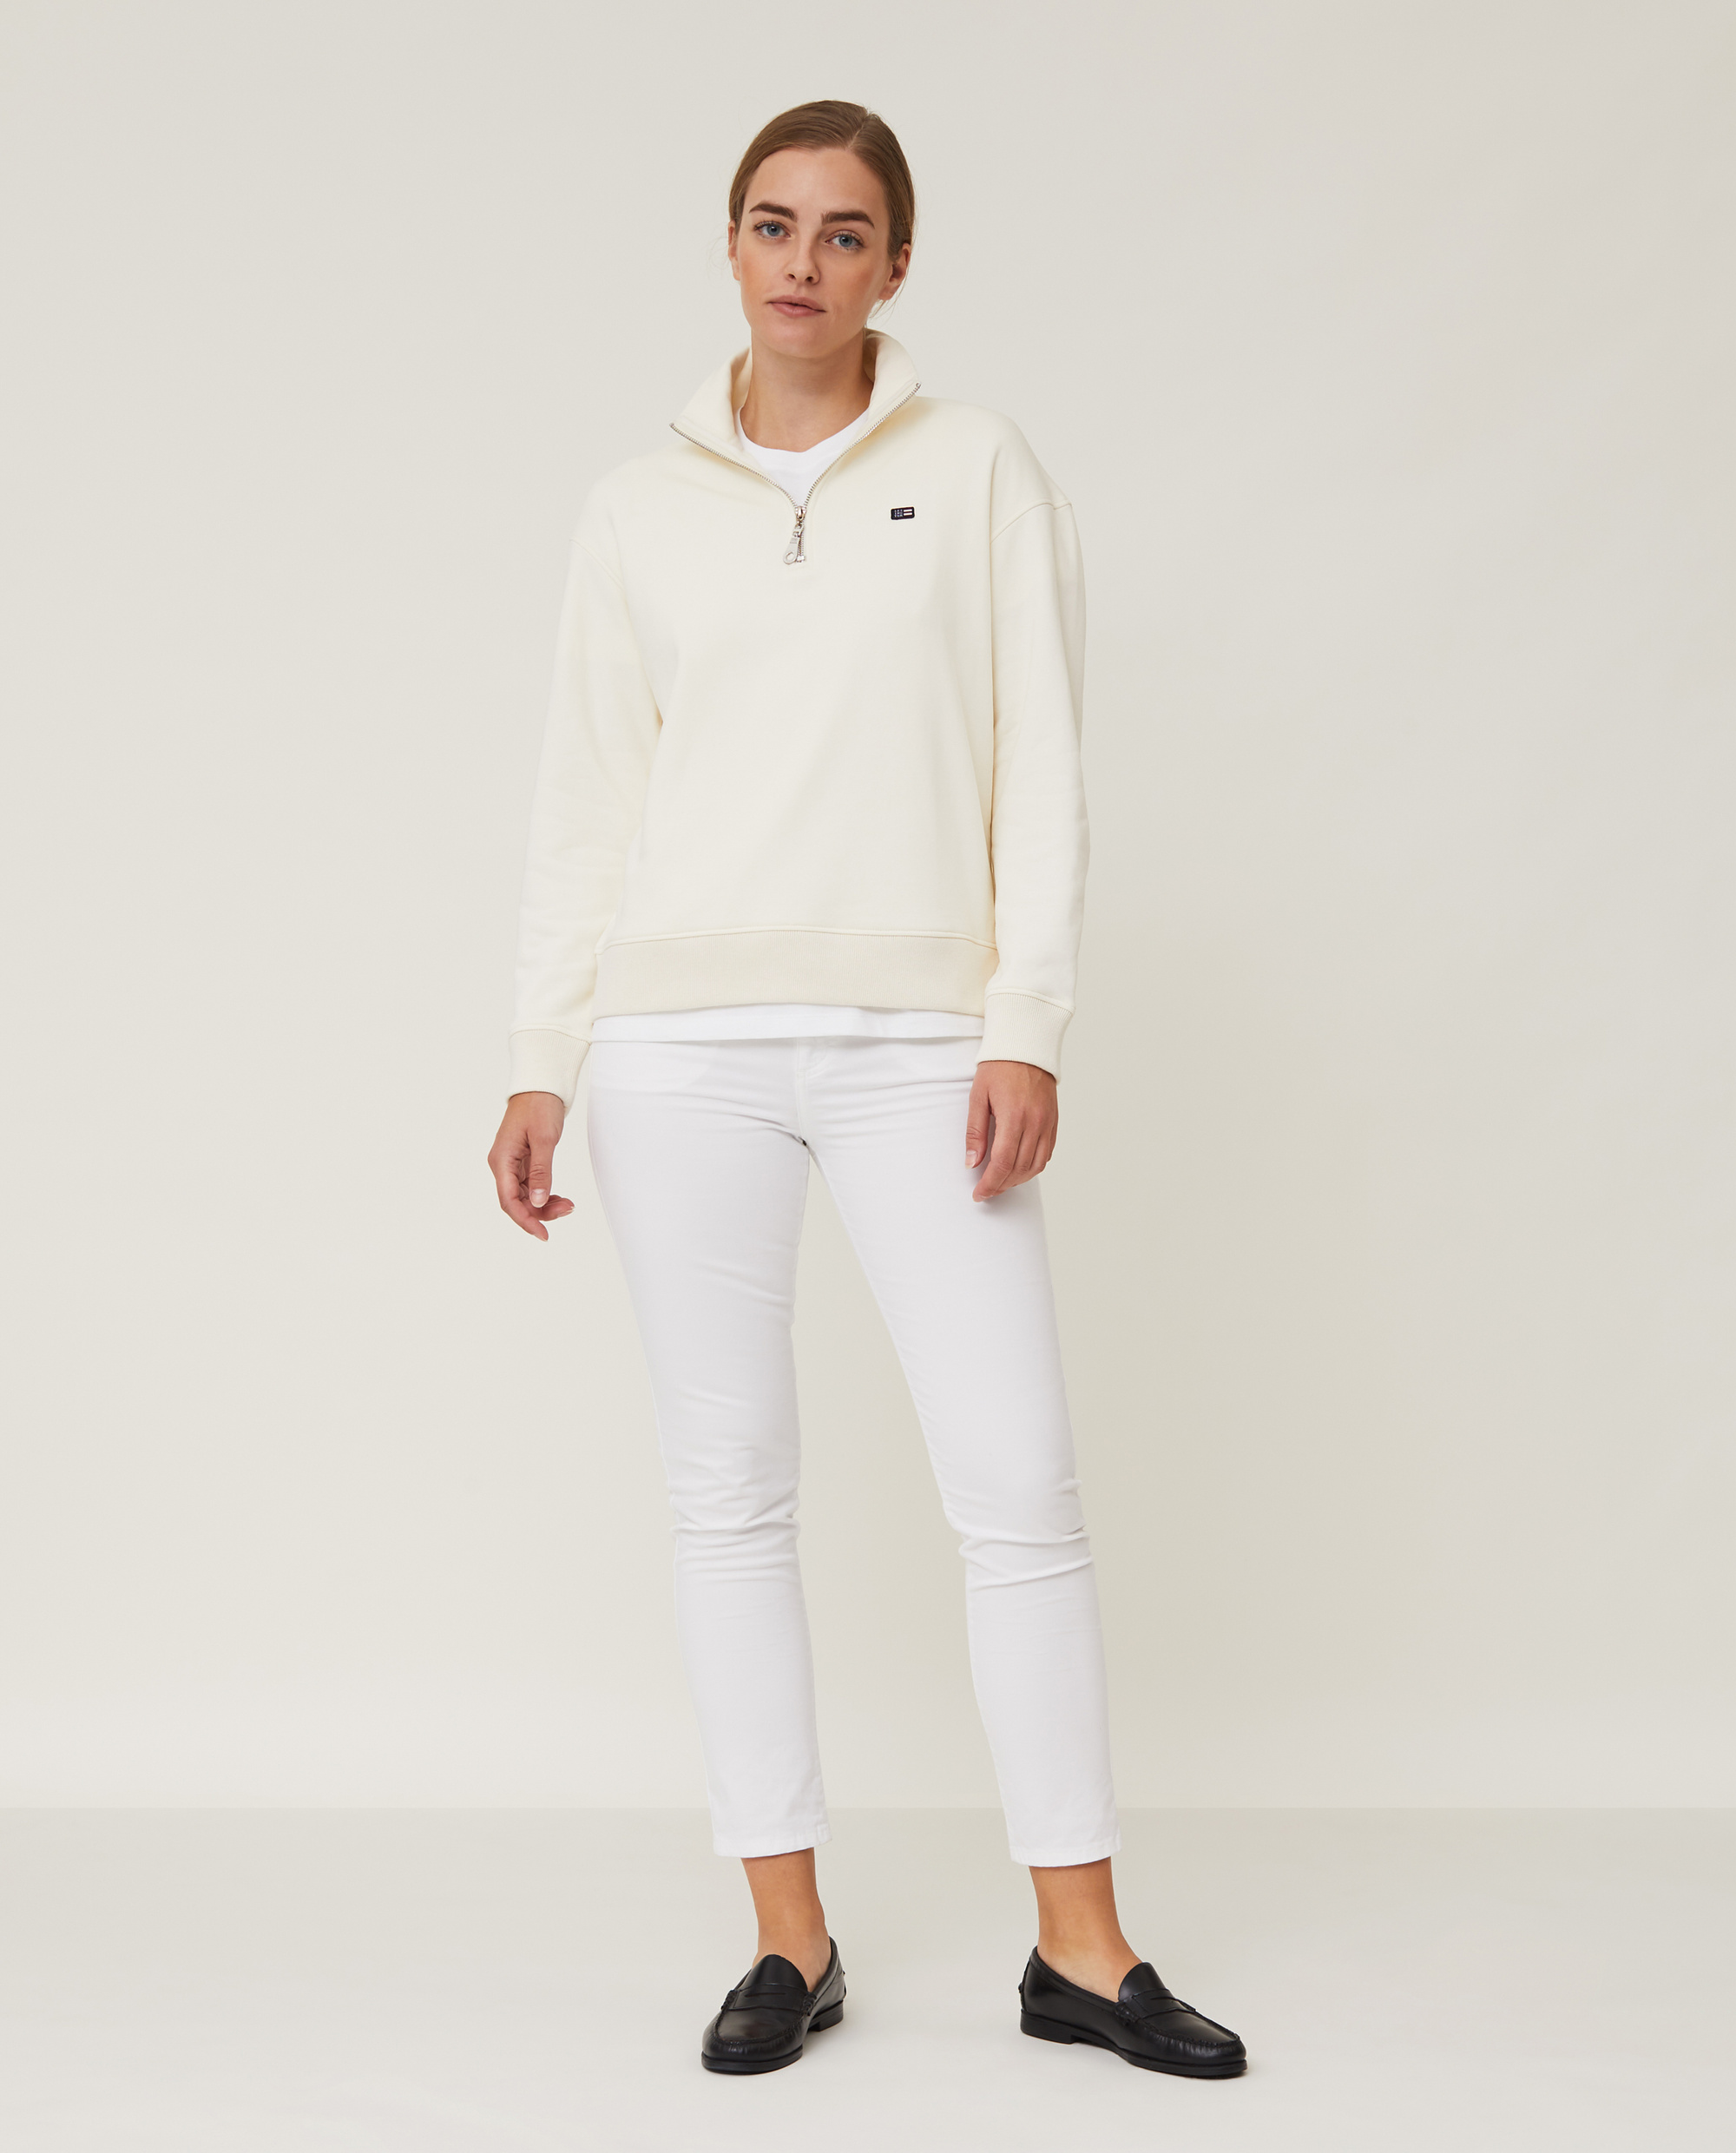 Kelly Organic Cotton Half Zip Sweatshirt, Offwhite